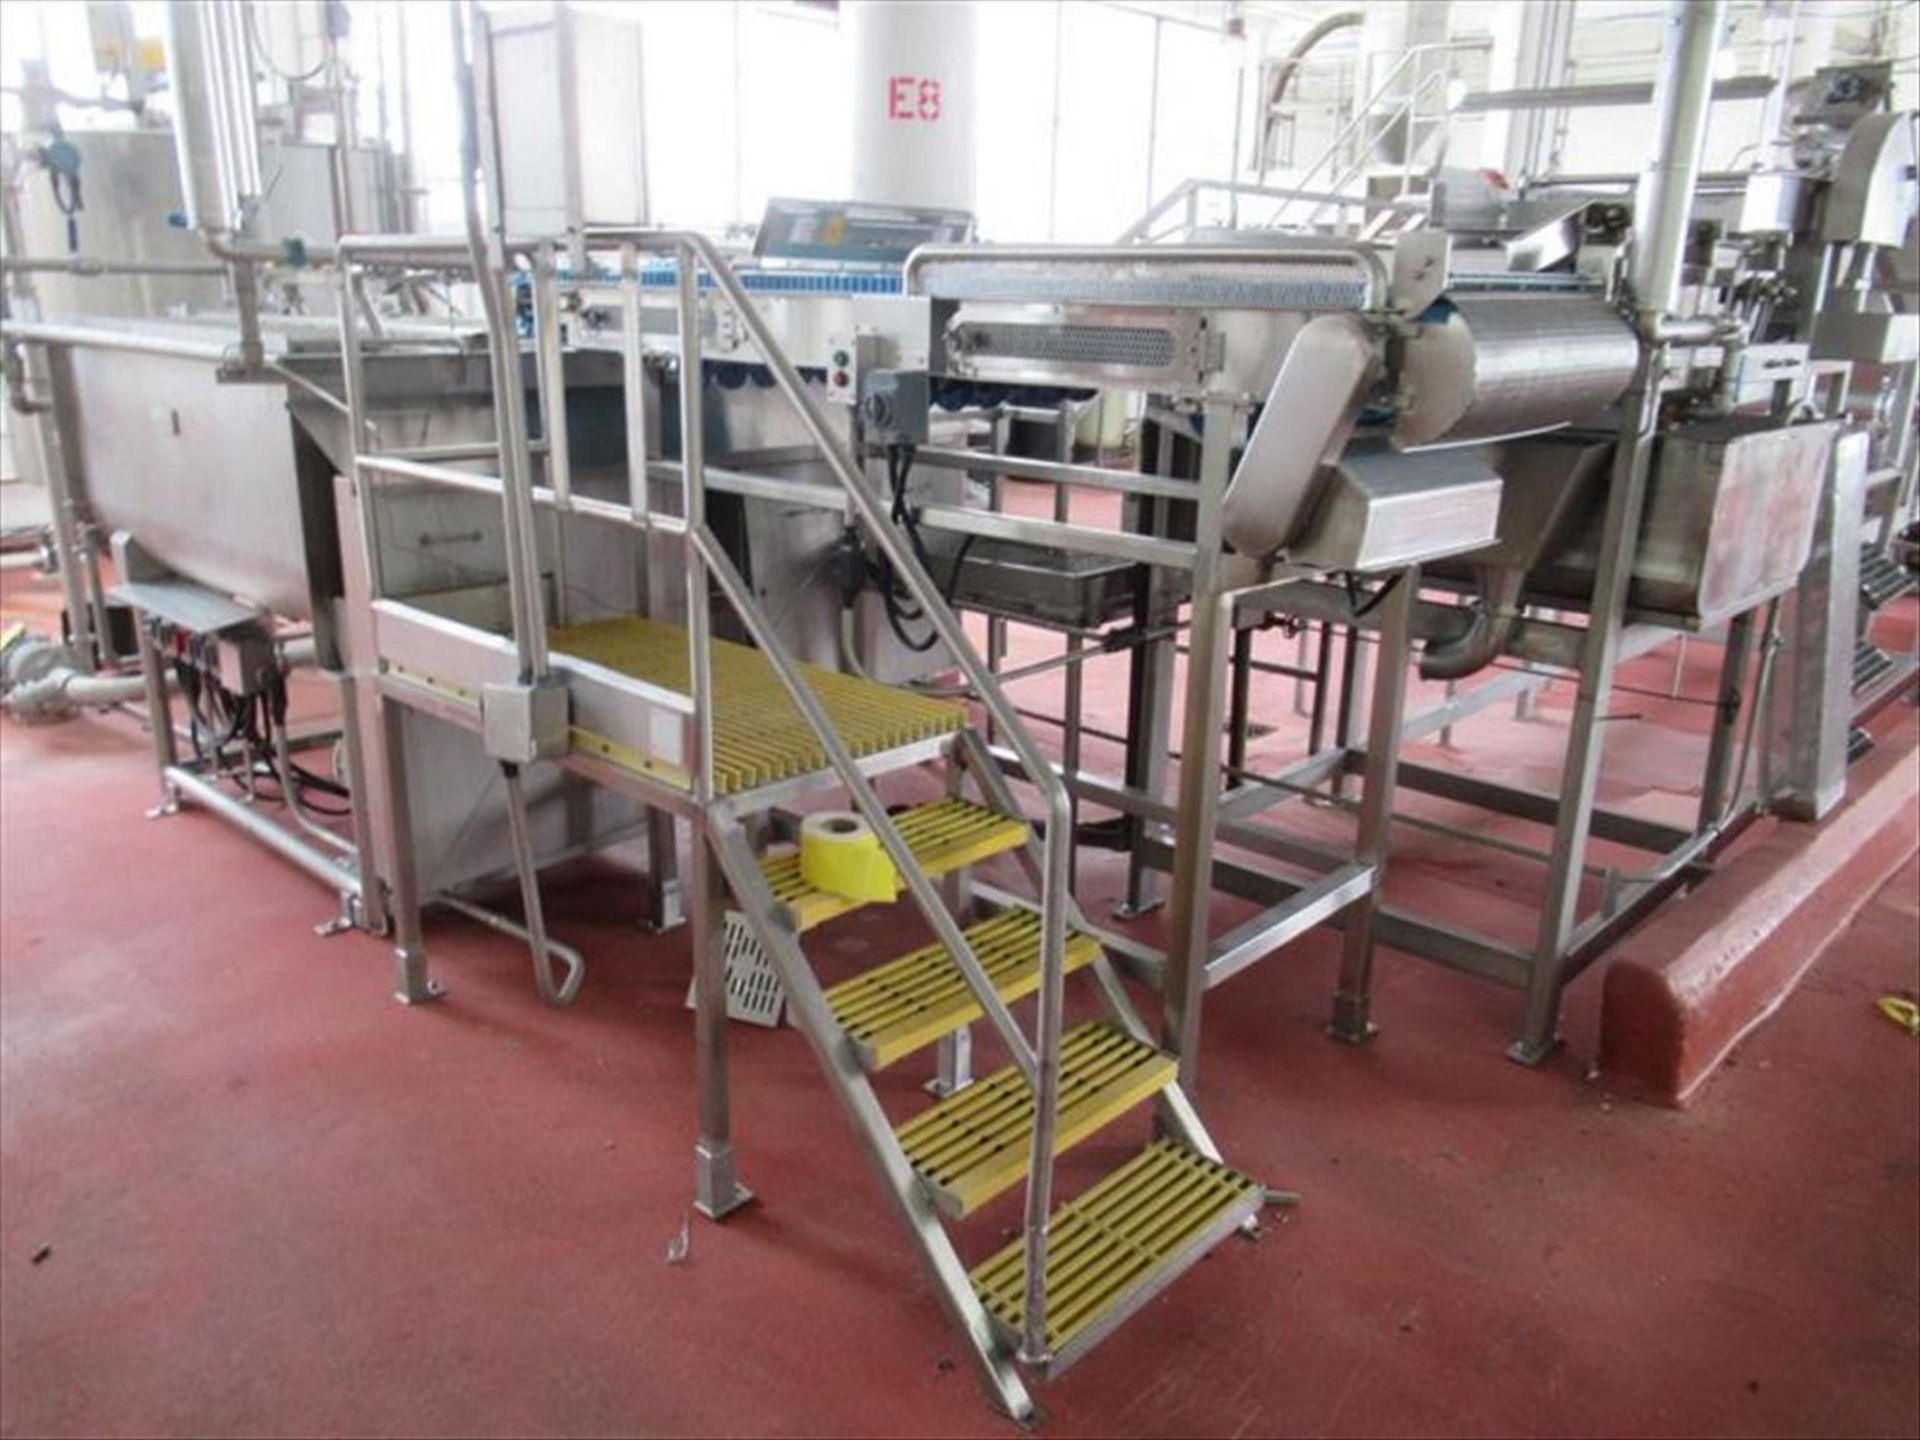 Lot 283 - Rubber belt conveyor with magnet approx 30 in w x 120 in l inspection belt conveyor with PVC